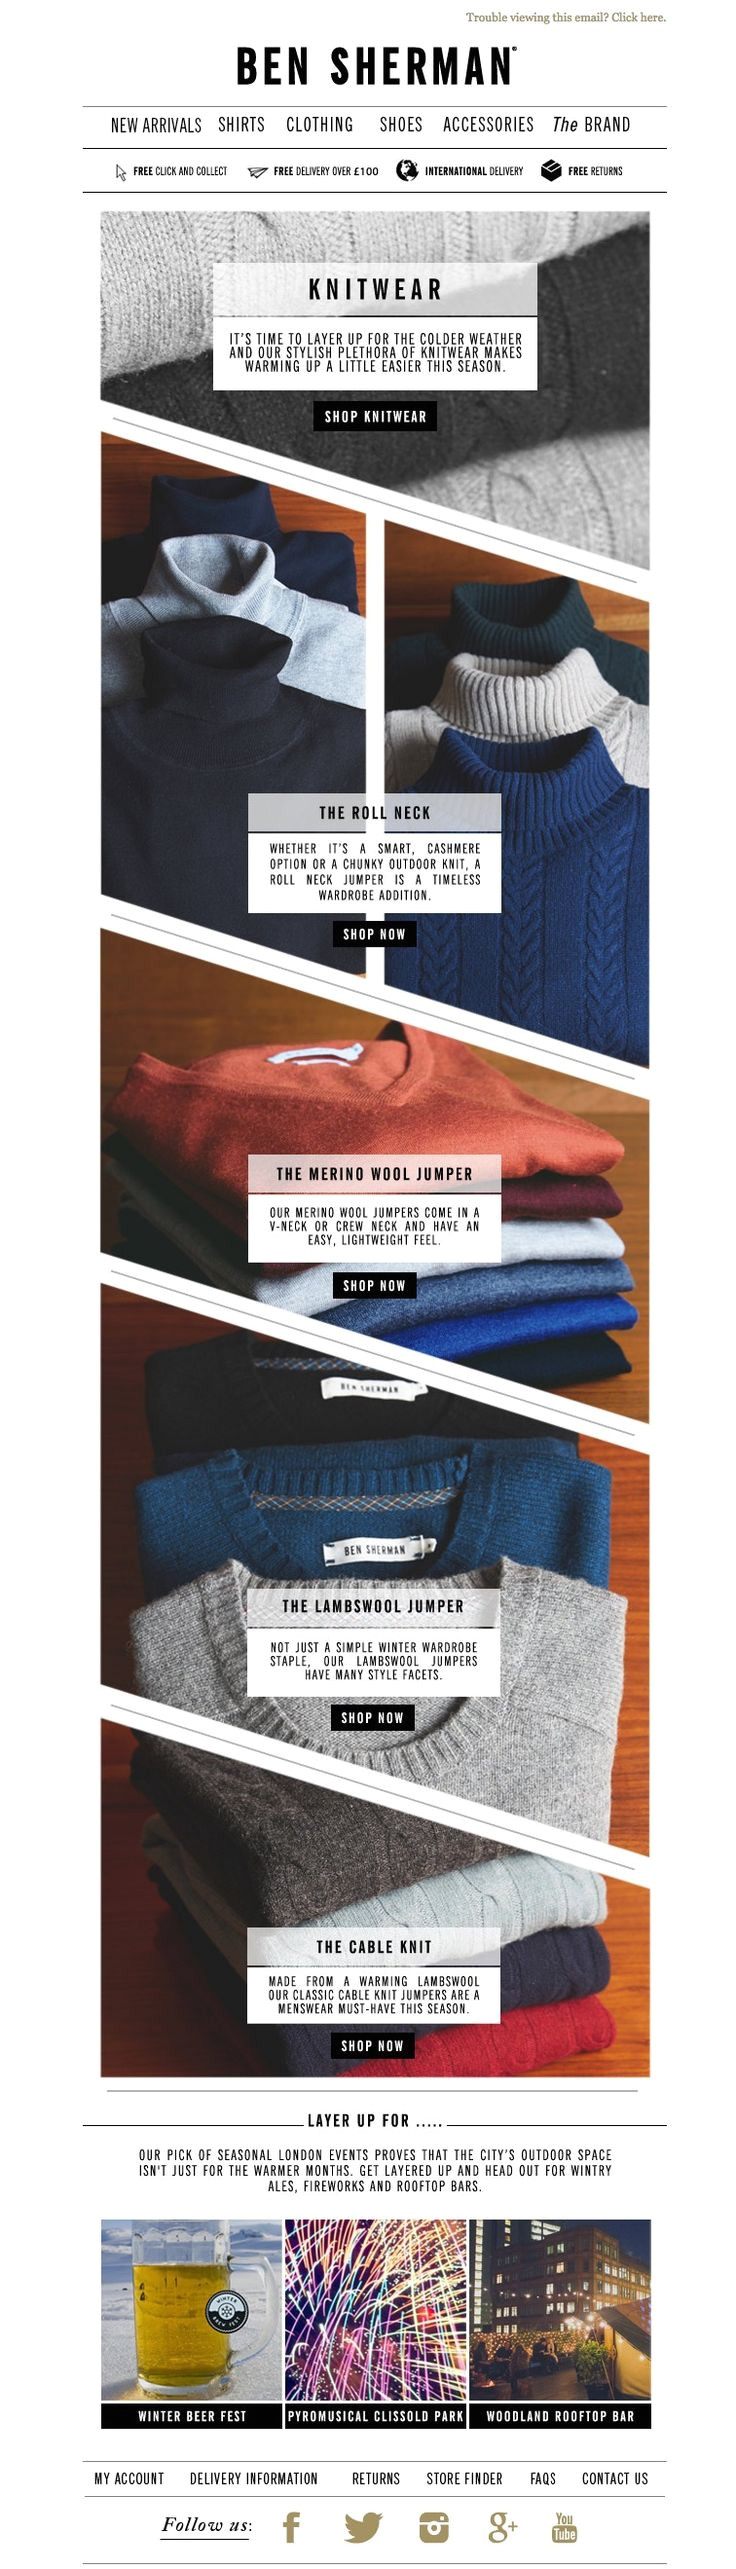 25 excellent ecommerce email templates examples to inspire your next campaign